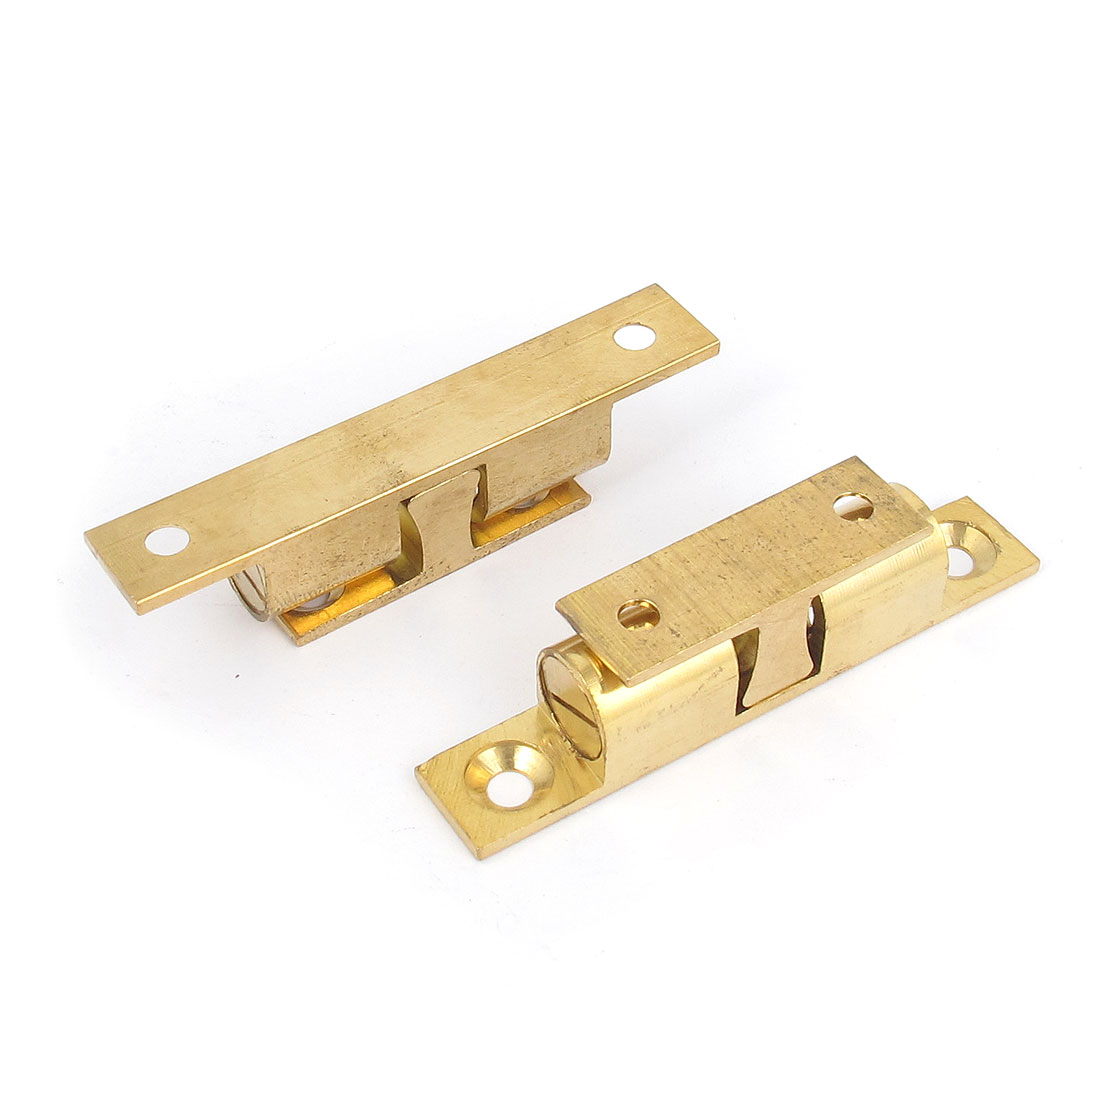 2pcs Cupboard Cabinet Door Double Ball Catch Brass Roller Latch 70mm Long Base